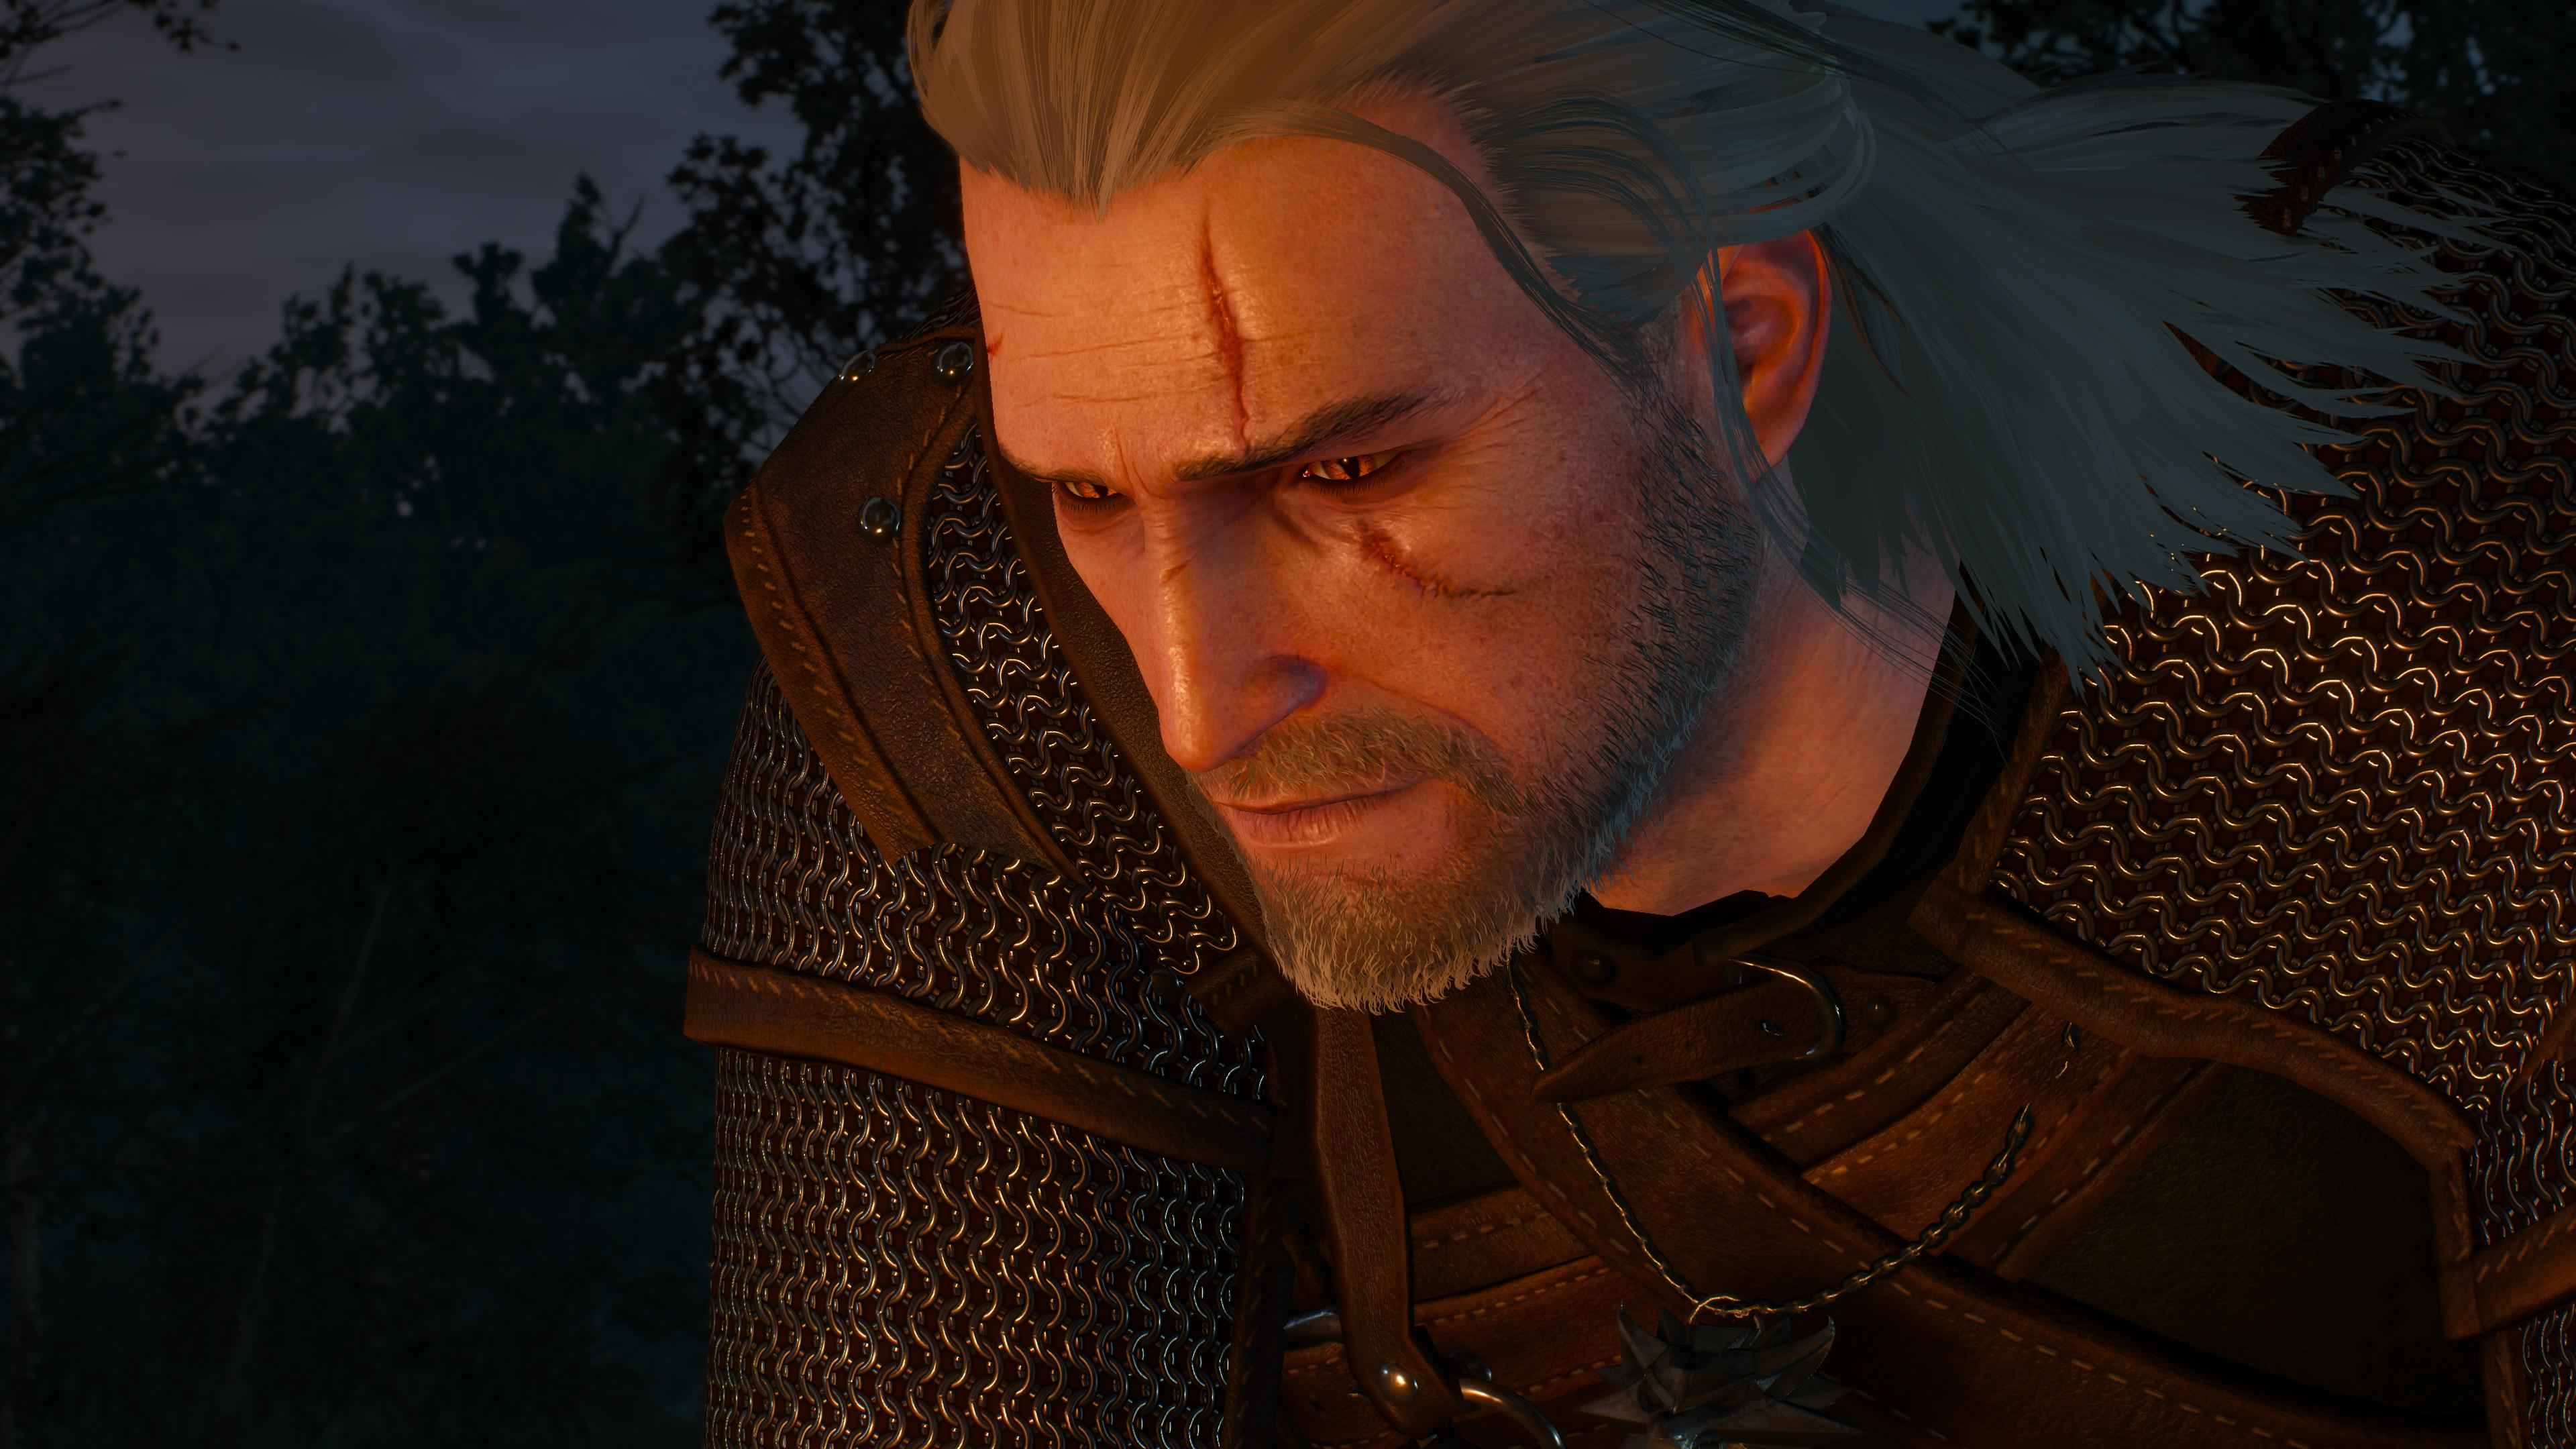 The Witcher: CD Projekt RED non ha abbandonato la saga